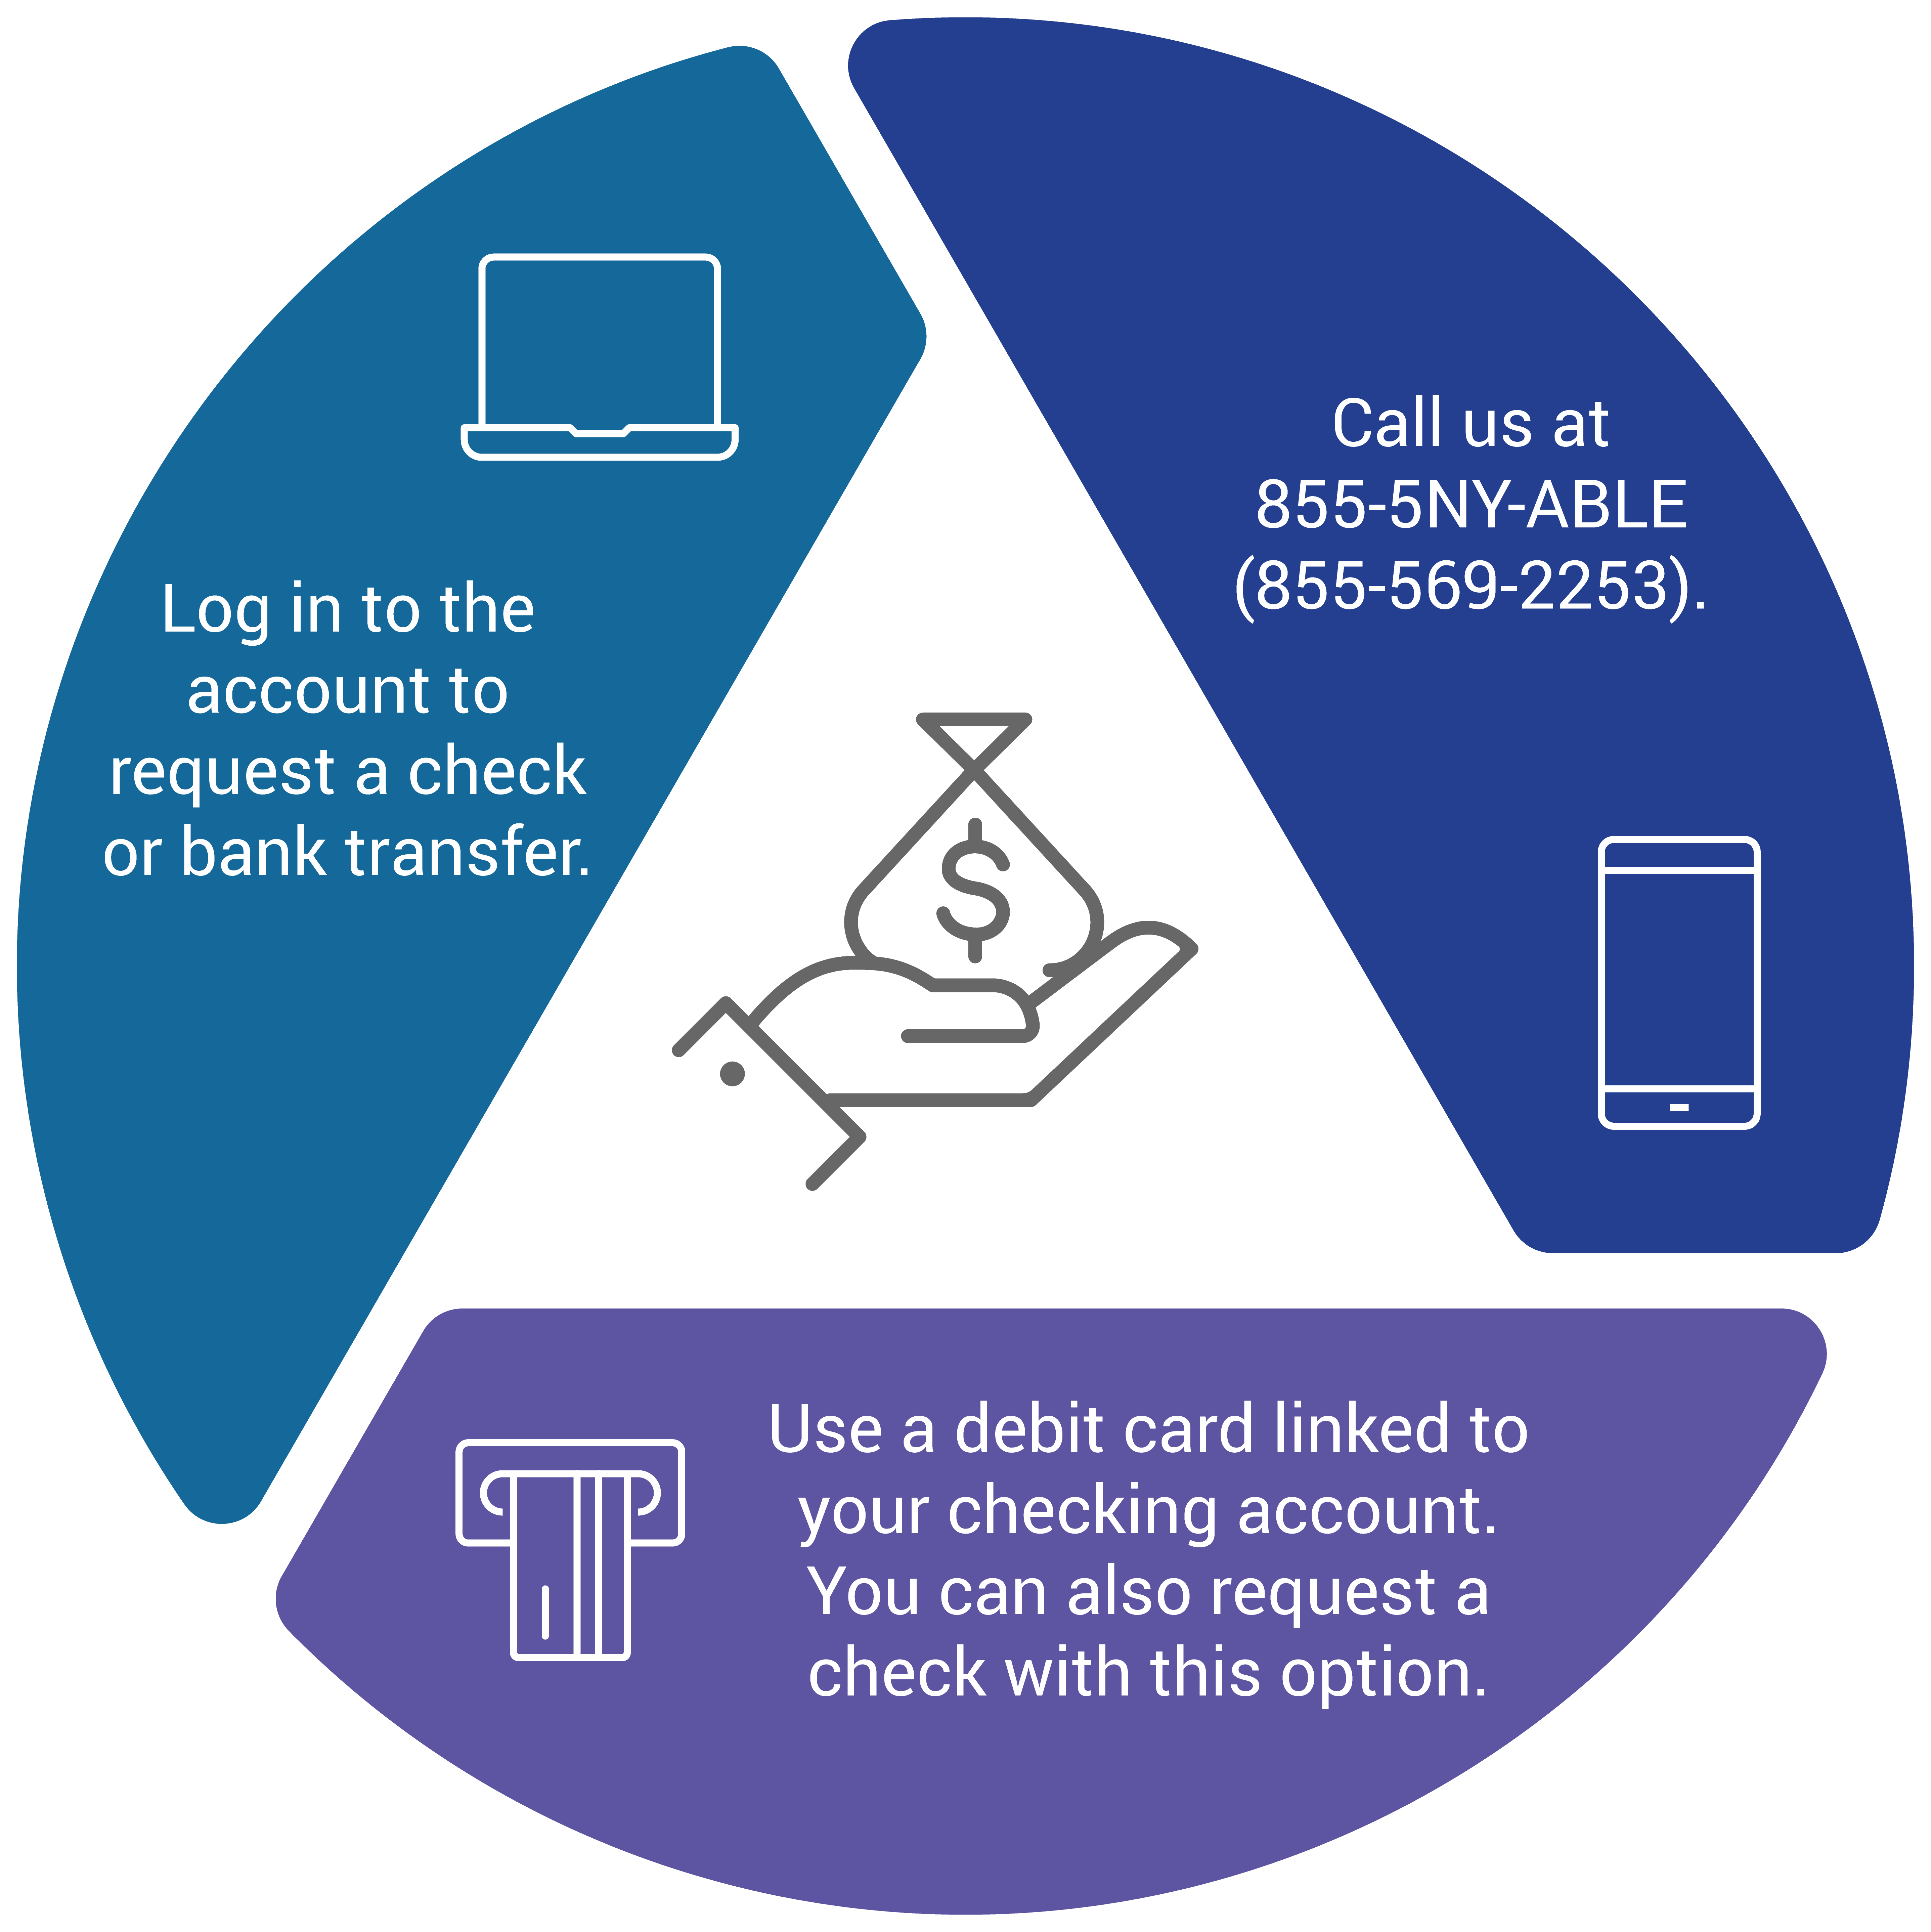 Log in to the account to request a check or bank transfer. Call NY ABLE at 855-5NY-ABLE (855-569-2253). Use a debit card linked to your checking account. You can also request a check with this option.